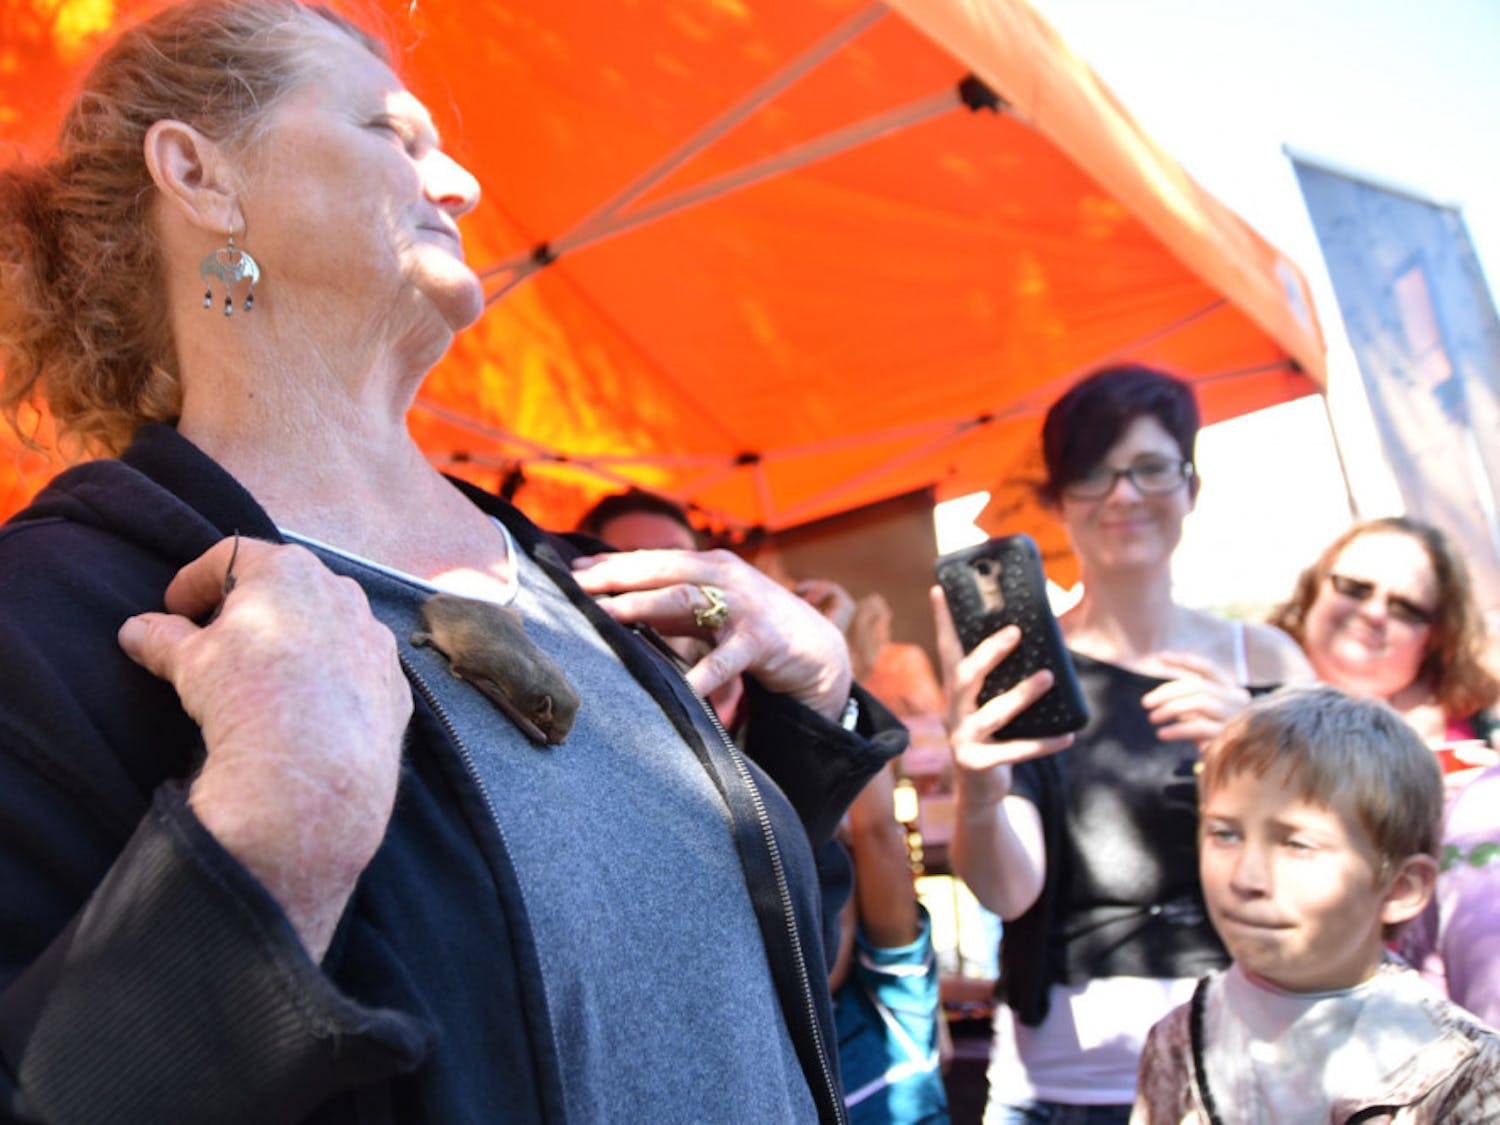 President of the Florida Bat Conservation, Shari Blissett-Clark, holds a bat during the Lubee Bat Conservancy's 12th Annual Florida Bat Festival on Saturday at 1309 NW 192nd Ave.